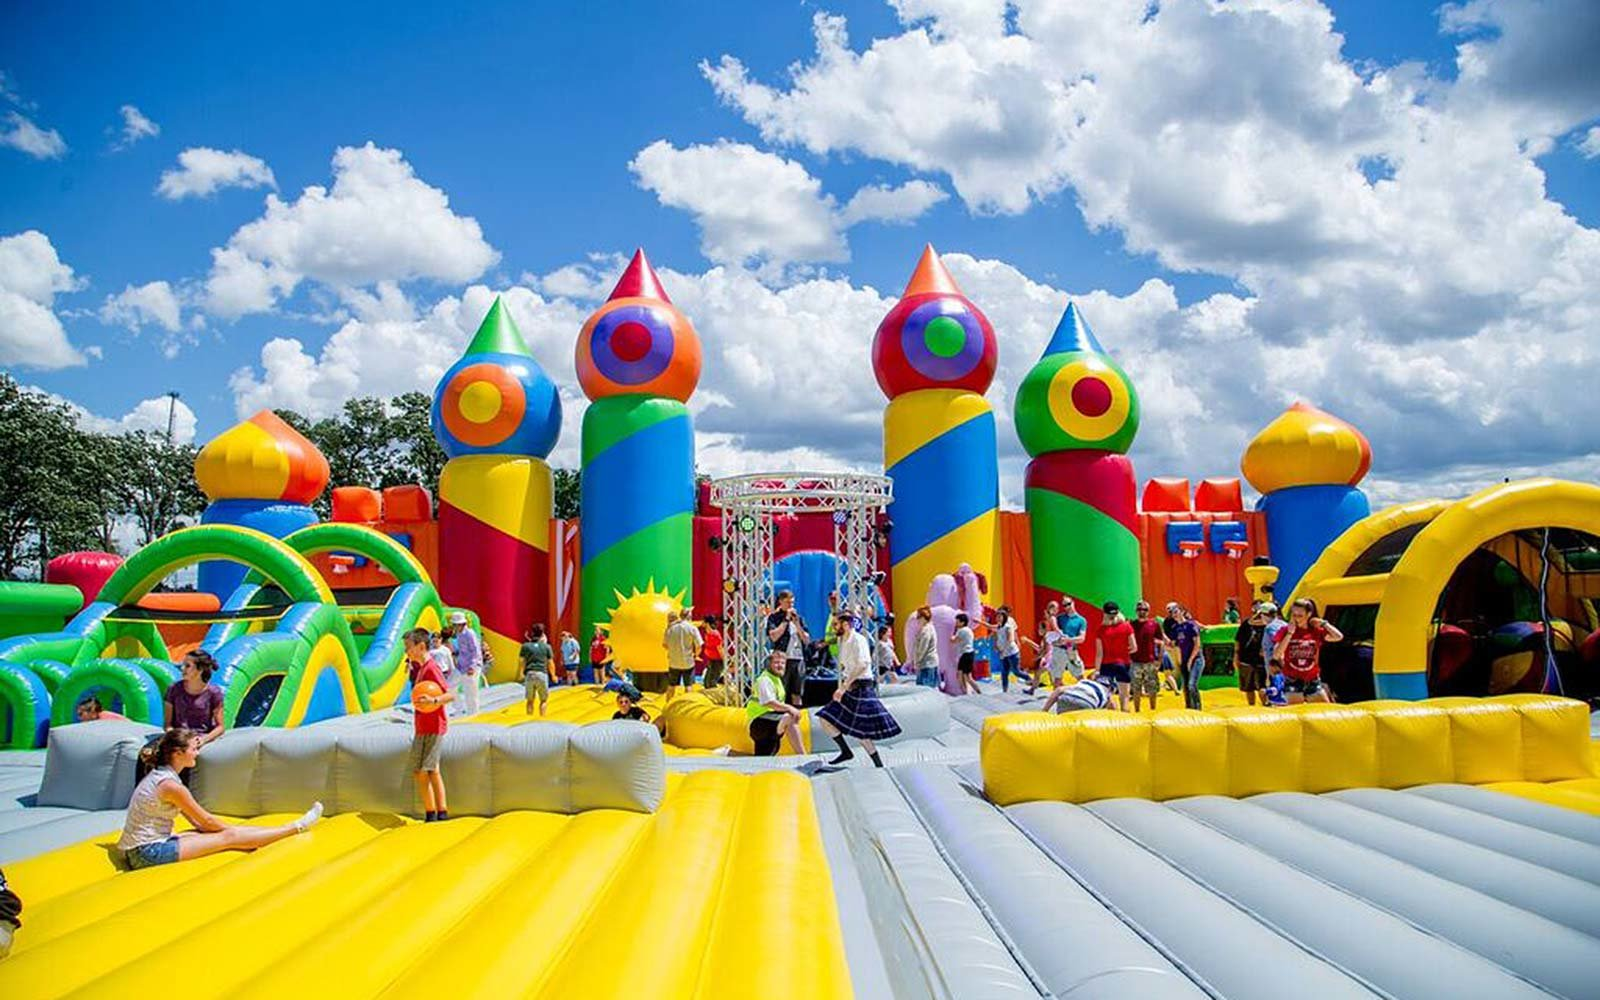 Best Kitchen Gallery: The World's Largest Bounce House May Be Ing To A City Near You of Largest House In Houston on rachelxblog.com